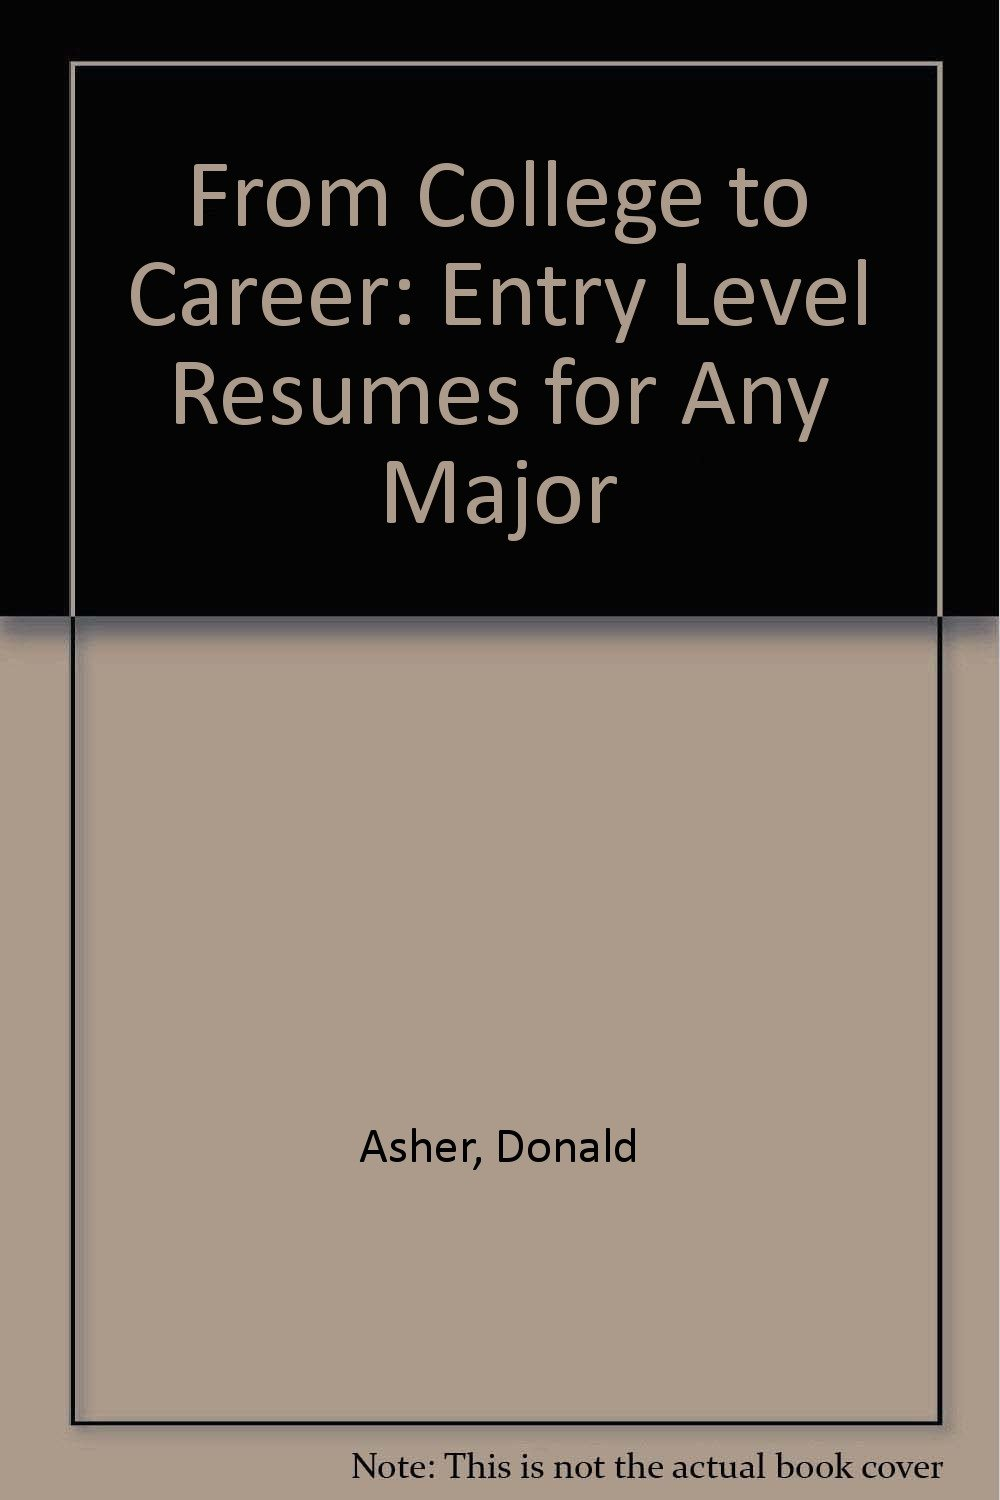 college to career entry level resumes for any major donald asher college to career entry level resumes for any major donald asher 9780898154627 com books